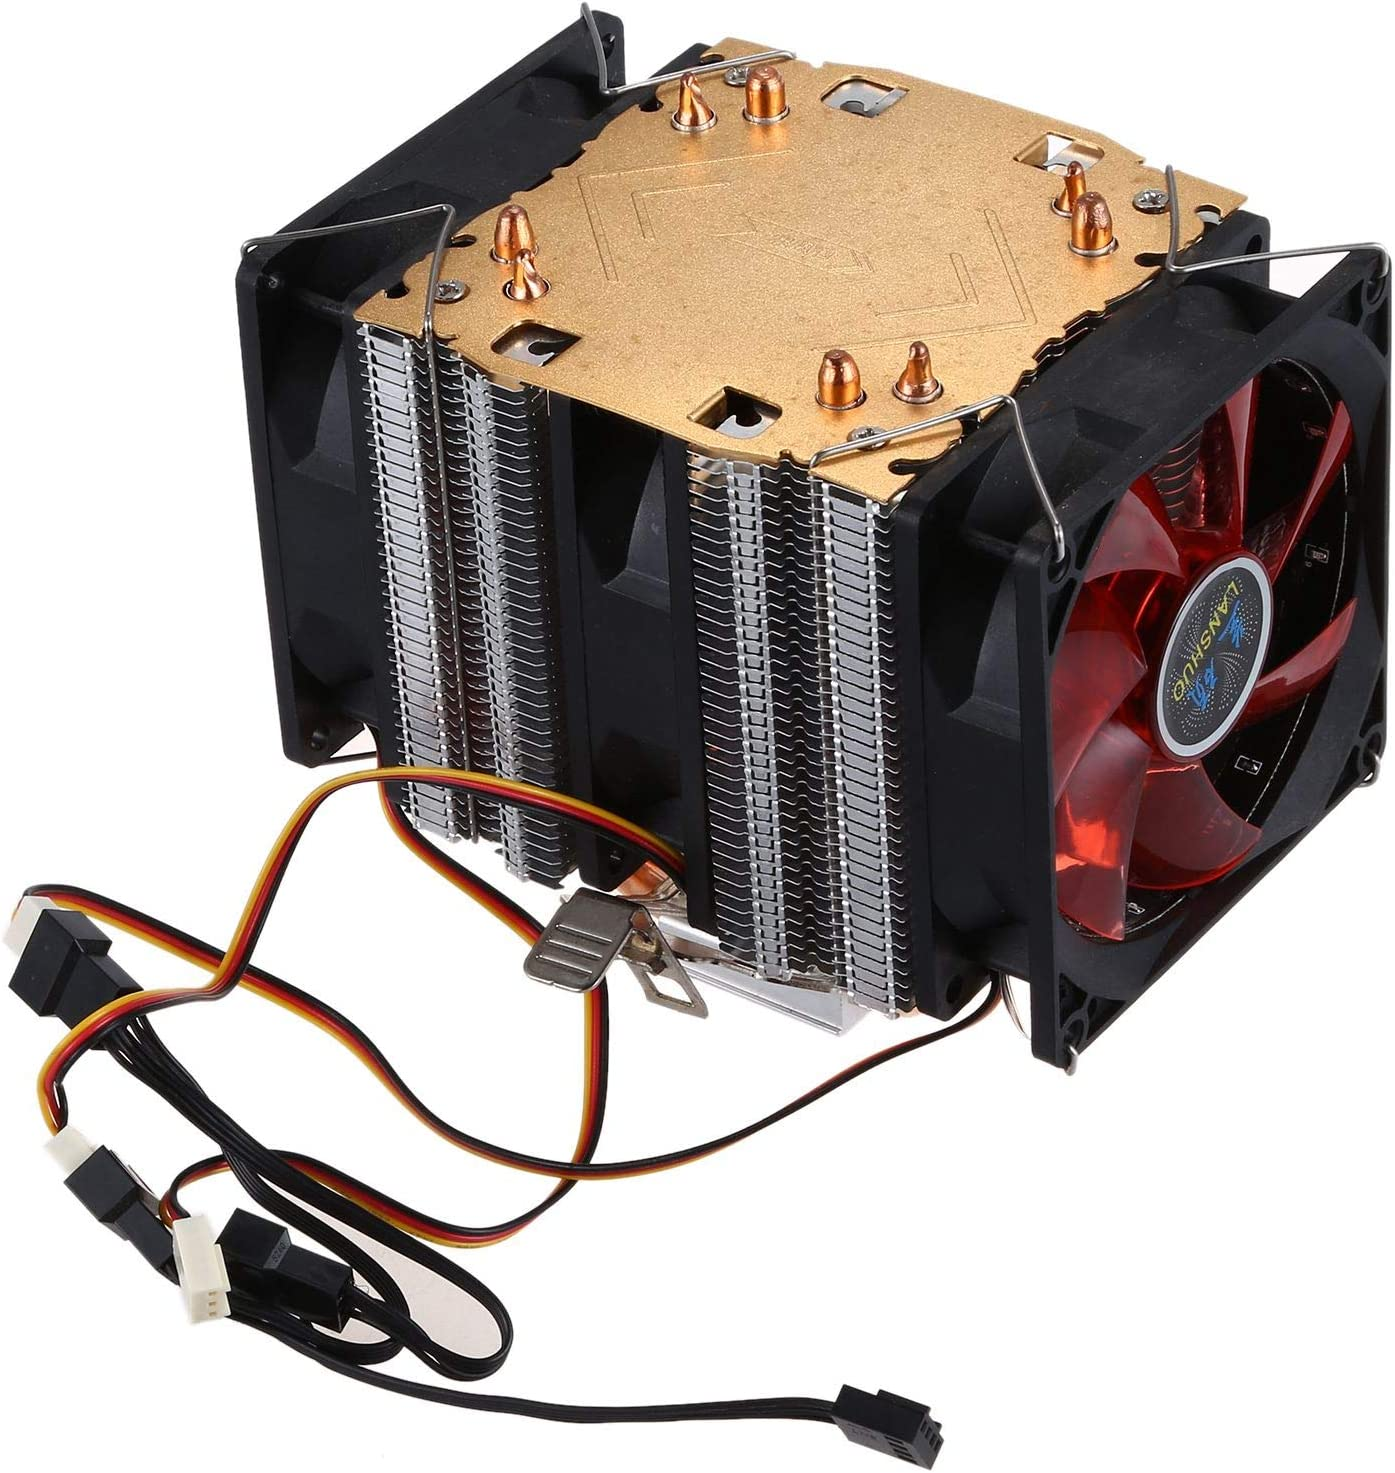 Black+Yell LANSHUO Pure Copper 4 Heat Pipe for 1366 1155 775Intel//AMD Multi-Platform CPU Radiator 3 Wire with Light Three Fans